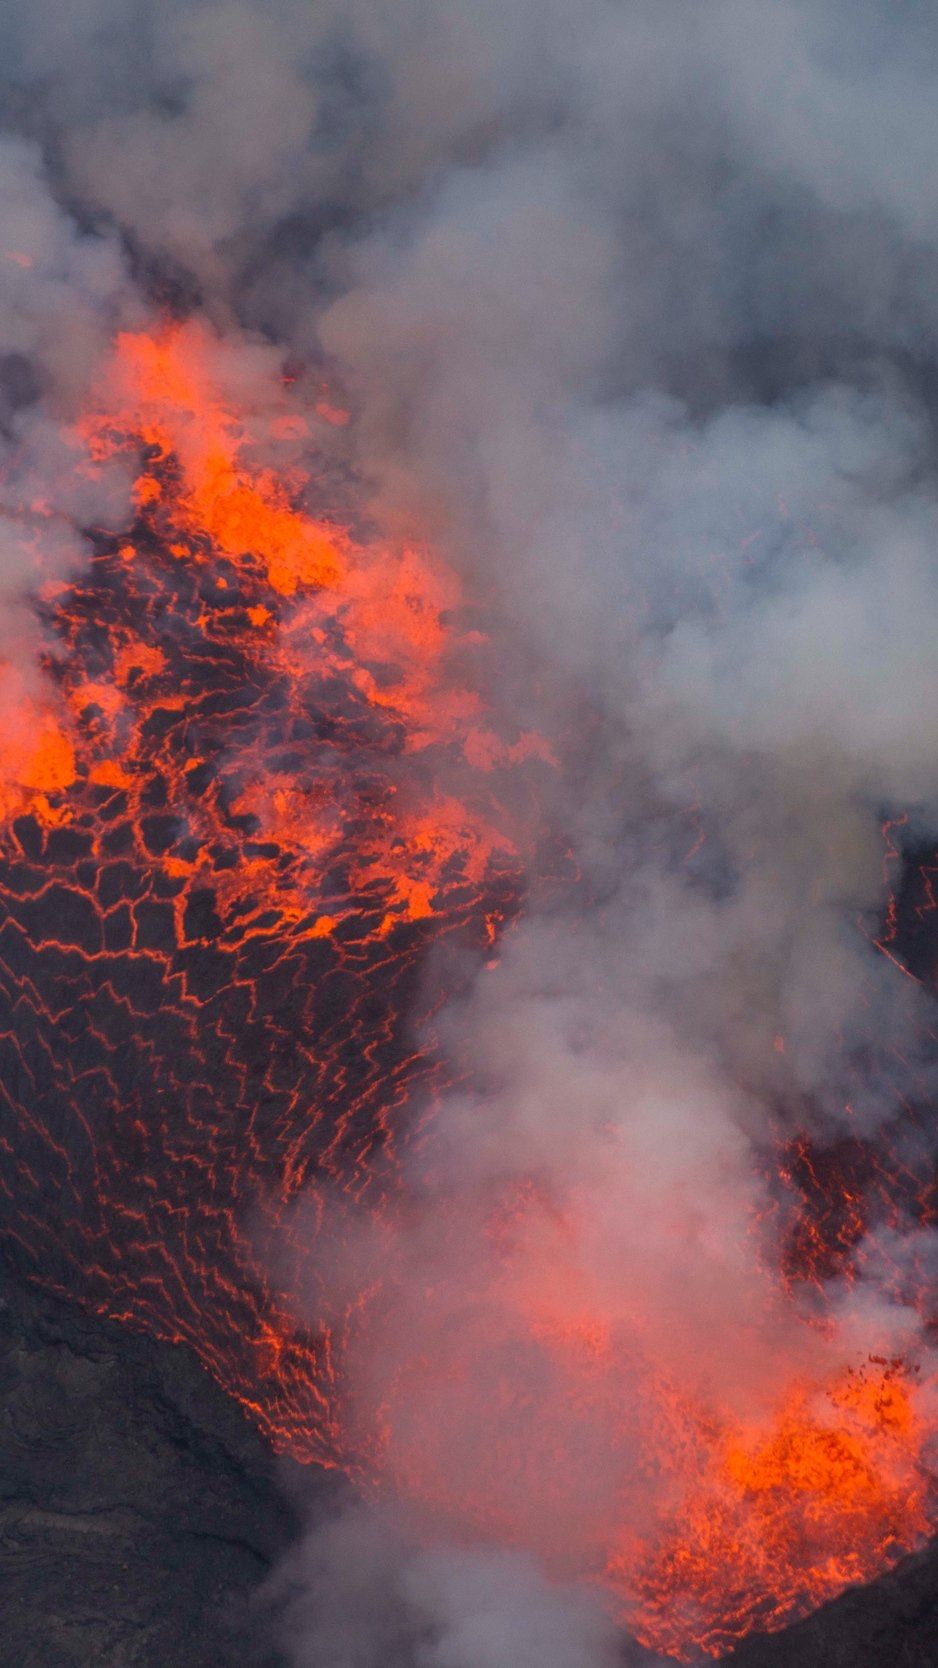 volcano_lava_eruption_138855_938x1668.jpg